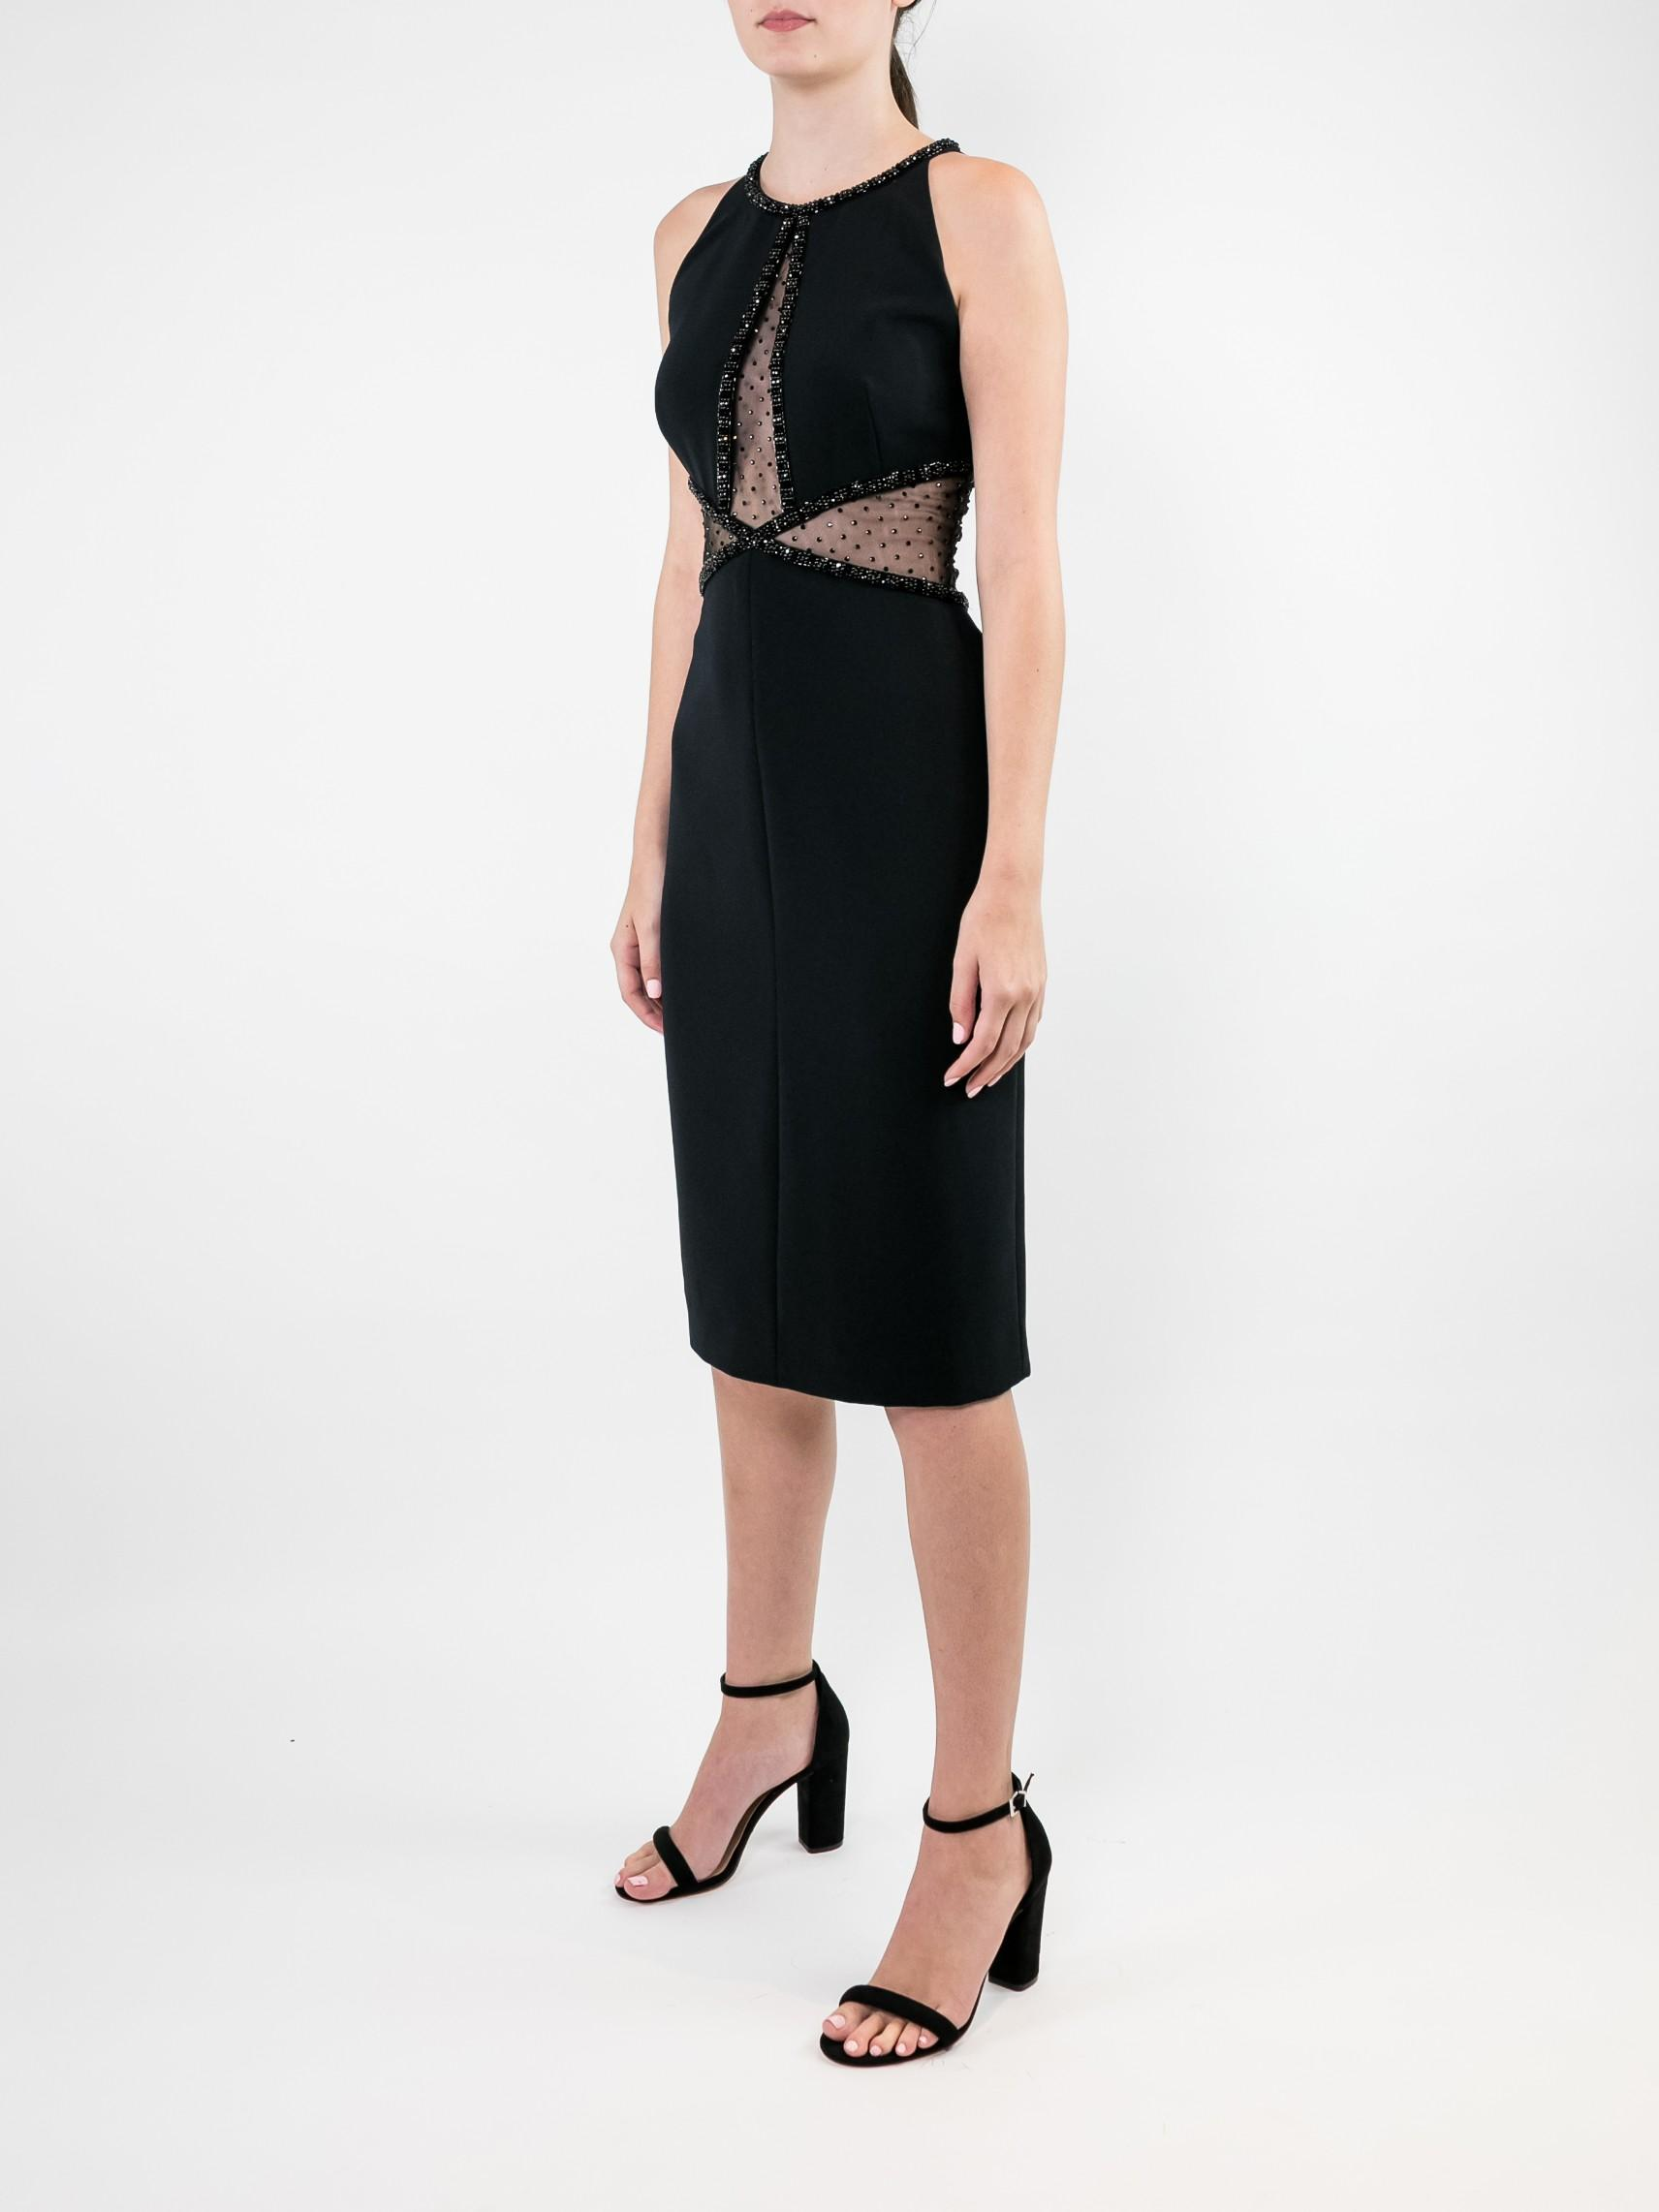 Sleeveless Cocktail Dress With Insets